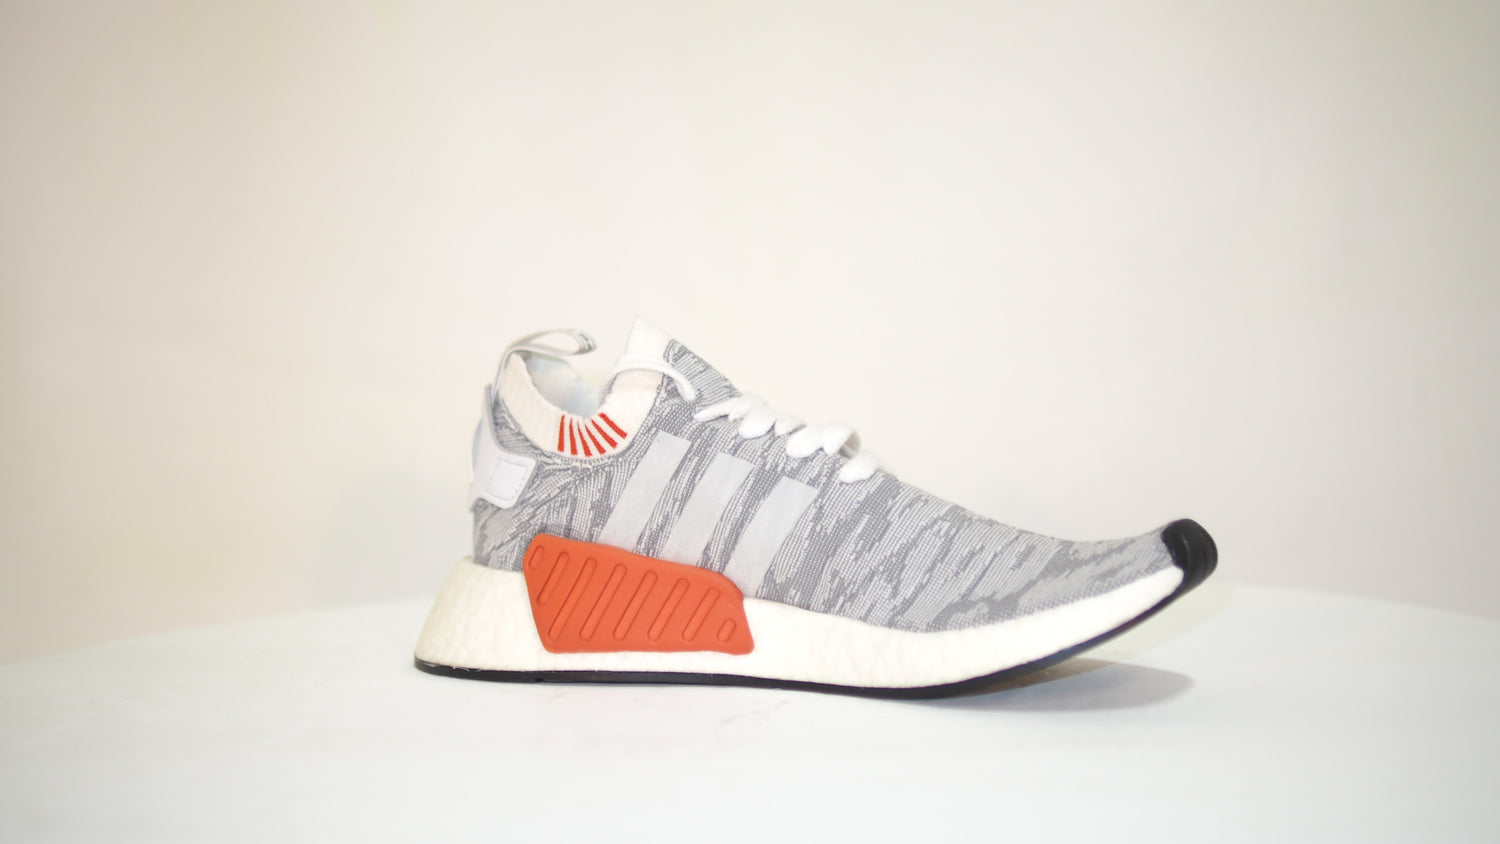 NMD_R2 Primeknit - Dream Town Shoes